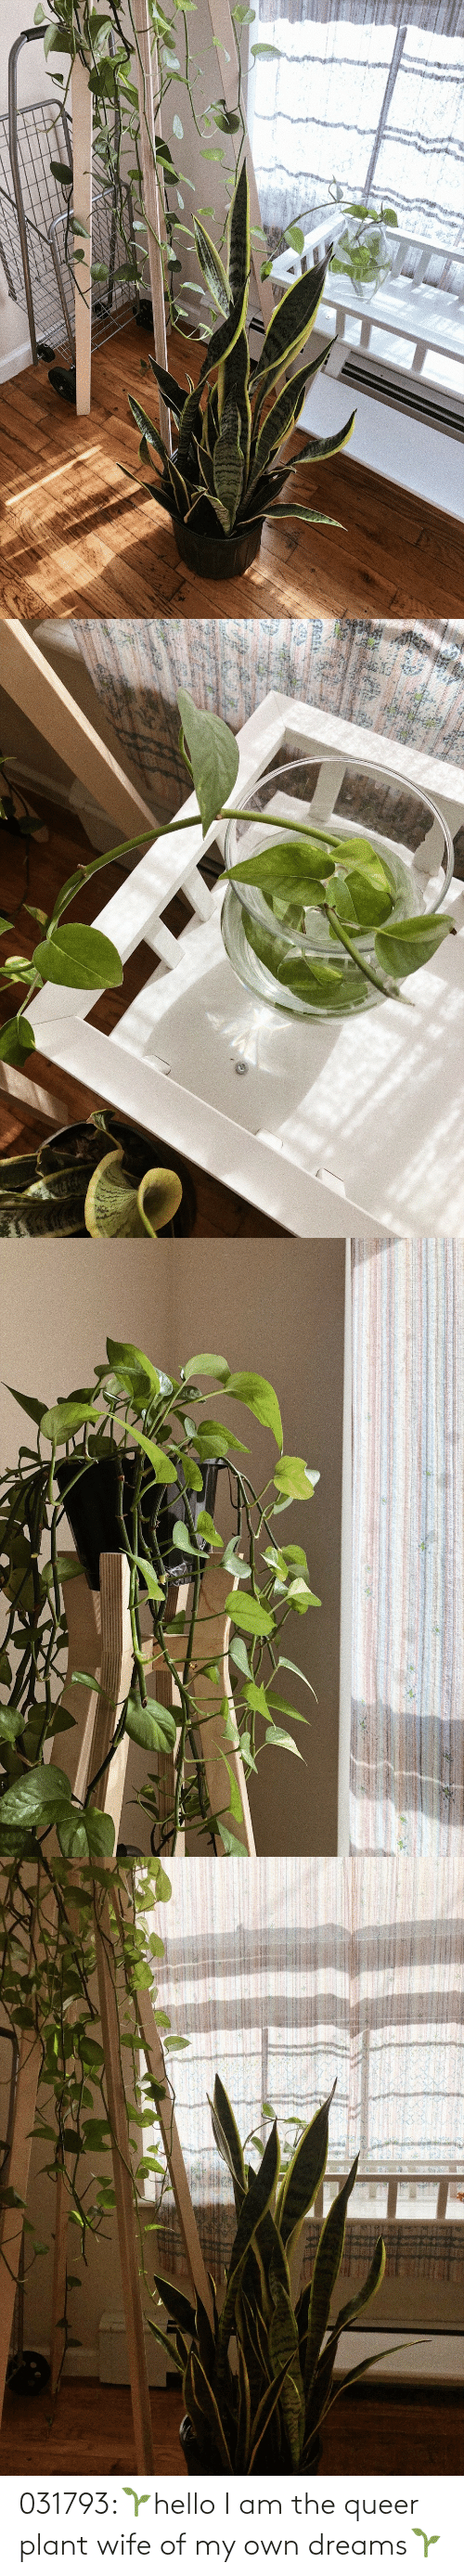 I Am The: 031793:🌱hello I am the queer plant wife of my own dreams🌱